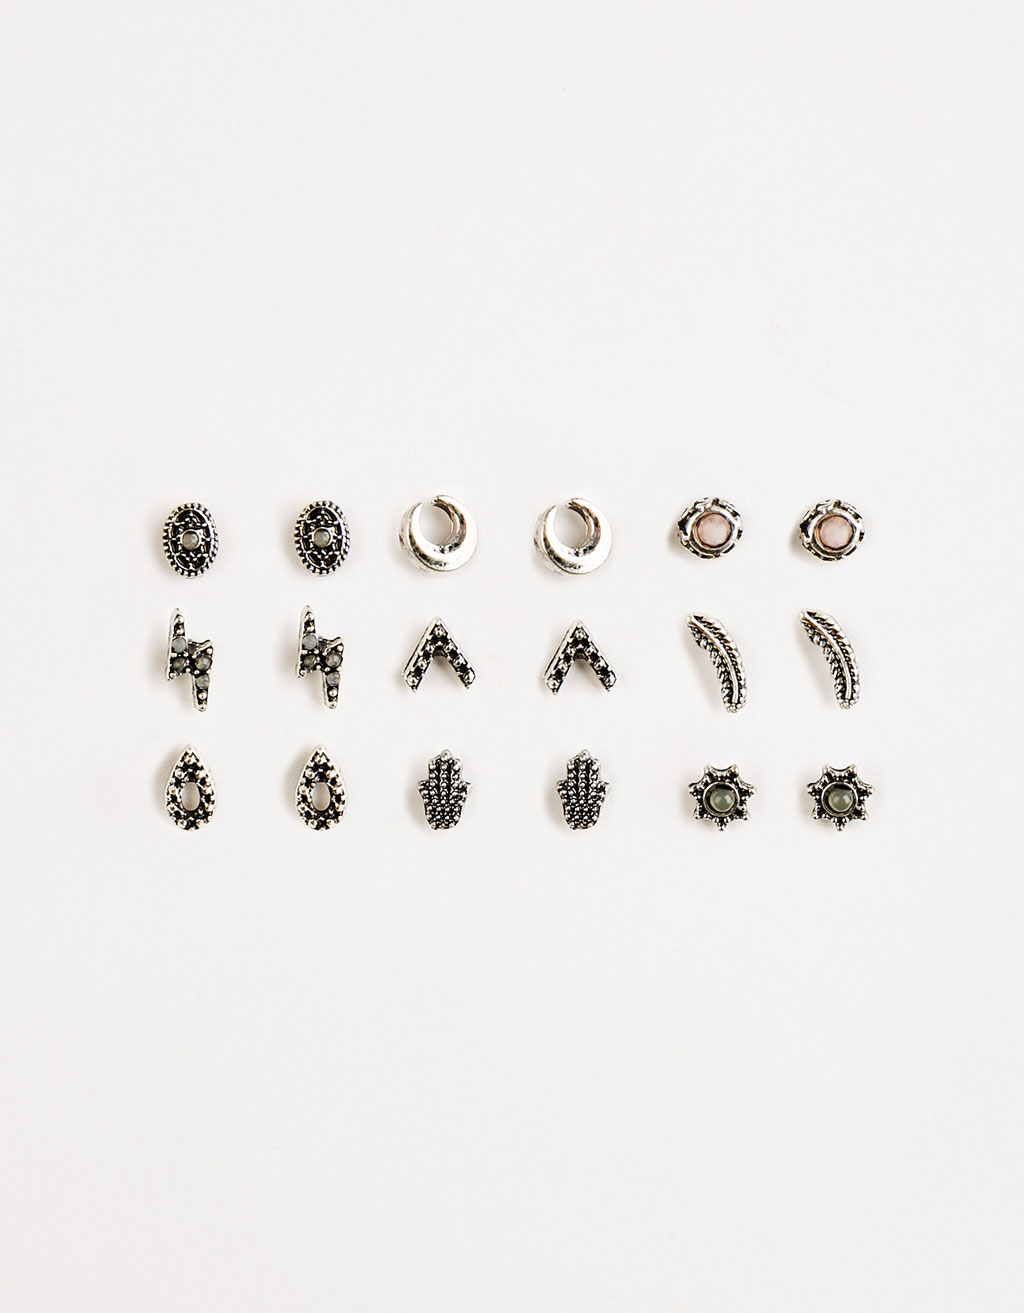 Set of 9 boho minimalist earrings